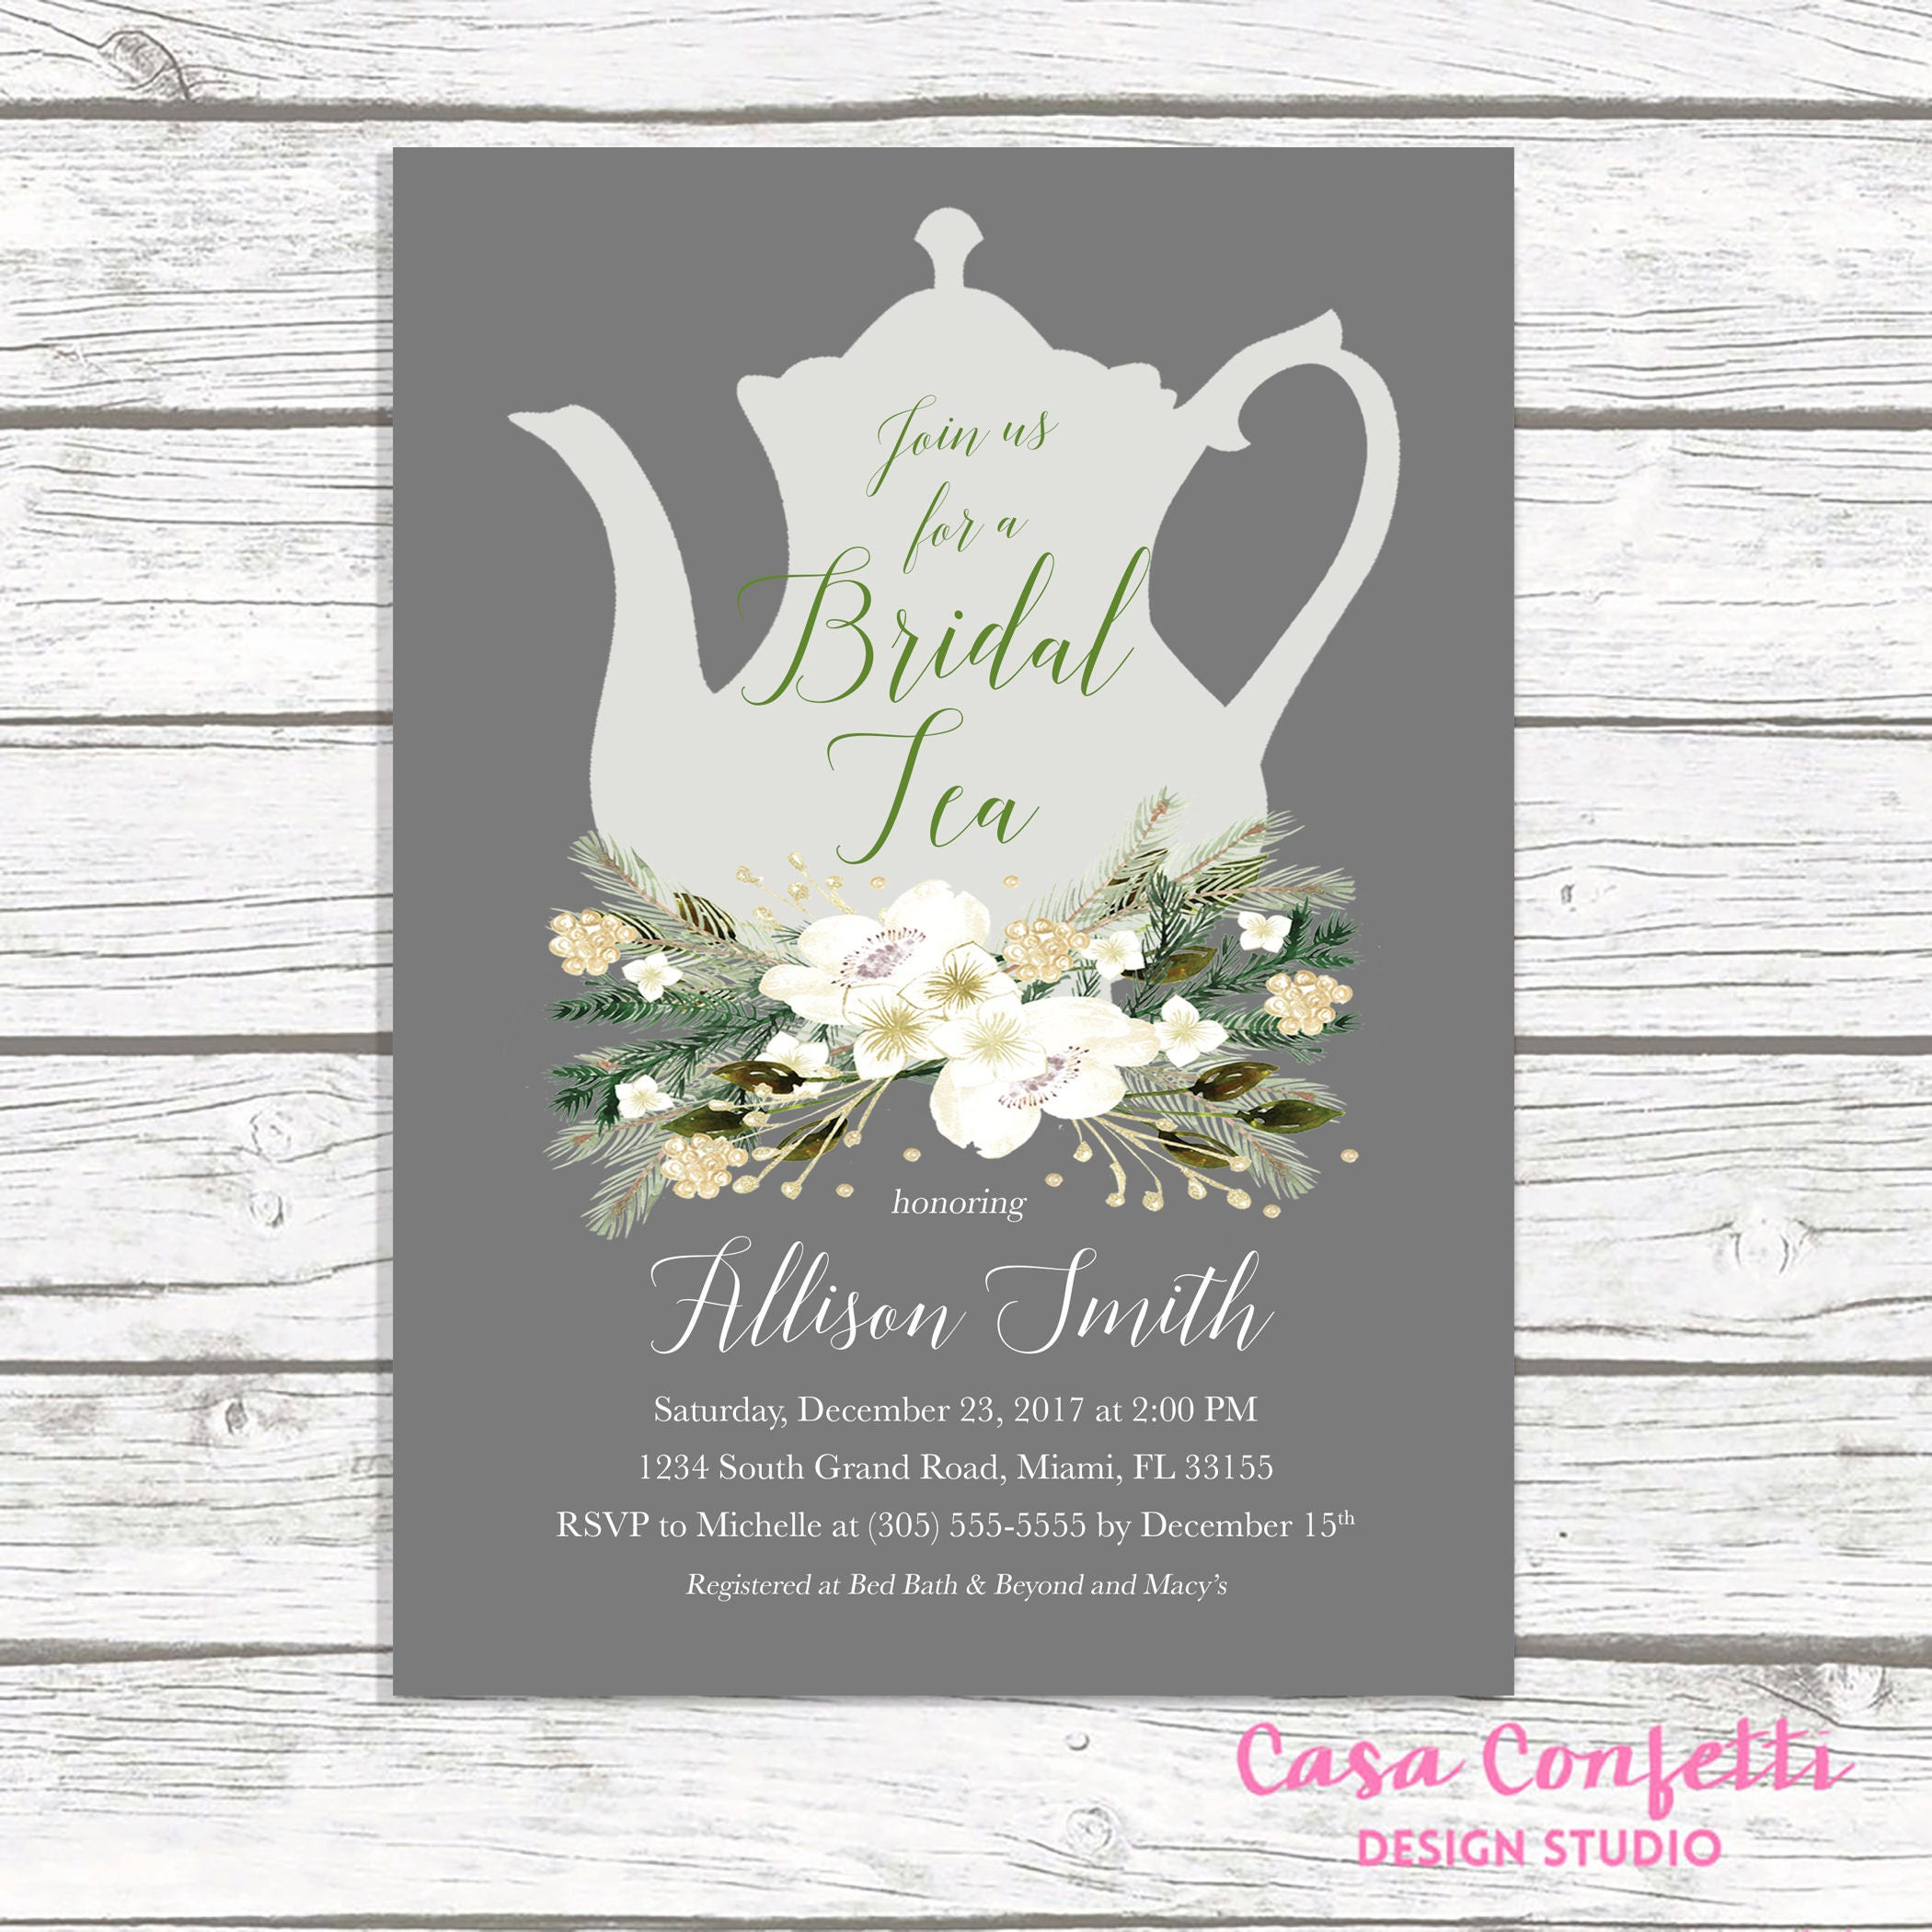 Christmas bridal shower invitation bridal tea invitation tea party christmas bridal shower invitation bridal tea invitation tea party invitation winter bridal shower invitation tea bridal shower invite filmwisefo